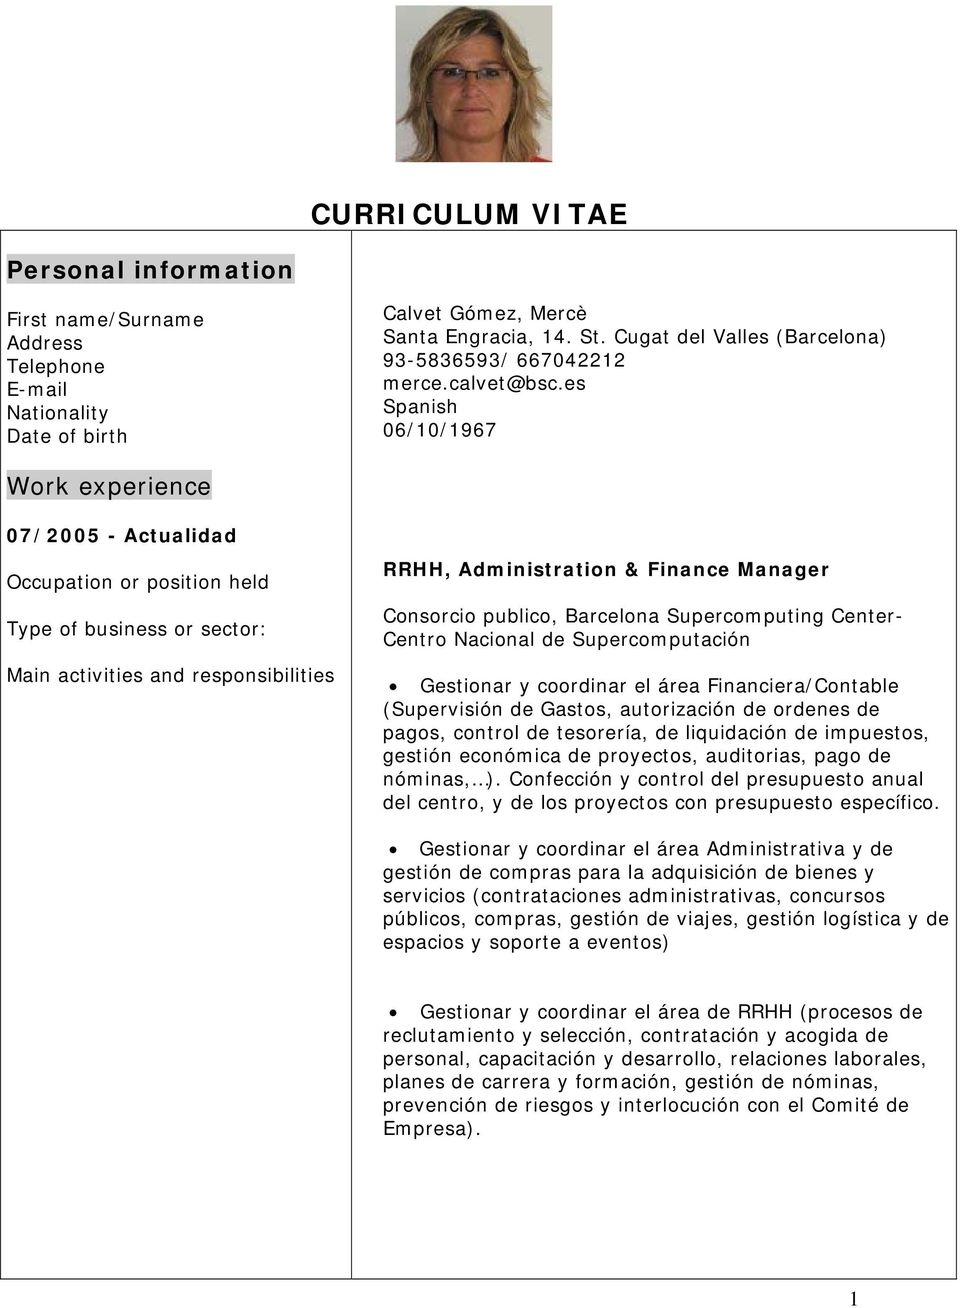 es Spanish 06/10/1967 Work experience 07/2005 - Actualidad RRHH, Administration & Finance Manager Consorcio publico, Barcelona Supercomputing Center- Centro Nacional de Supercomputación Gestionar y